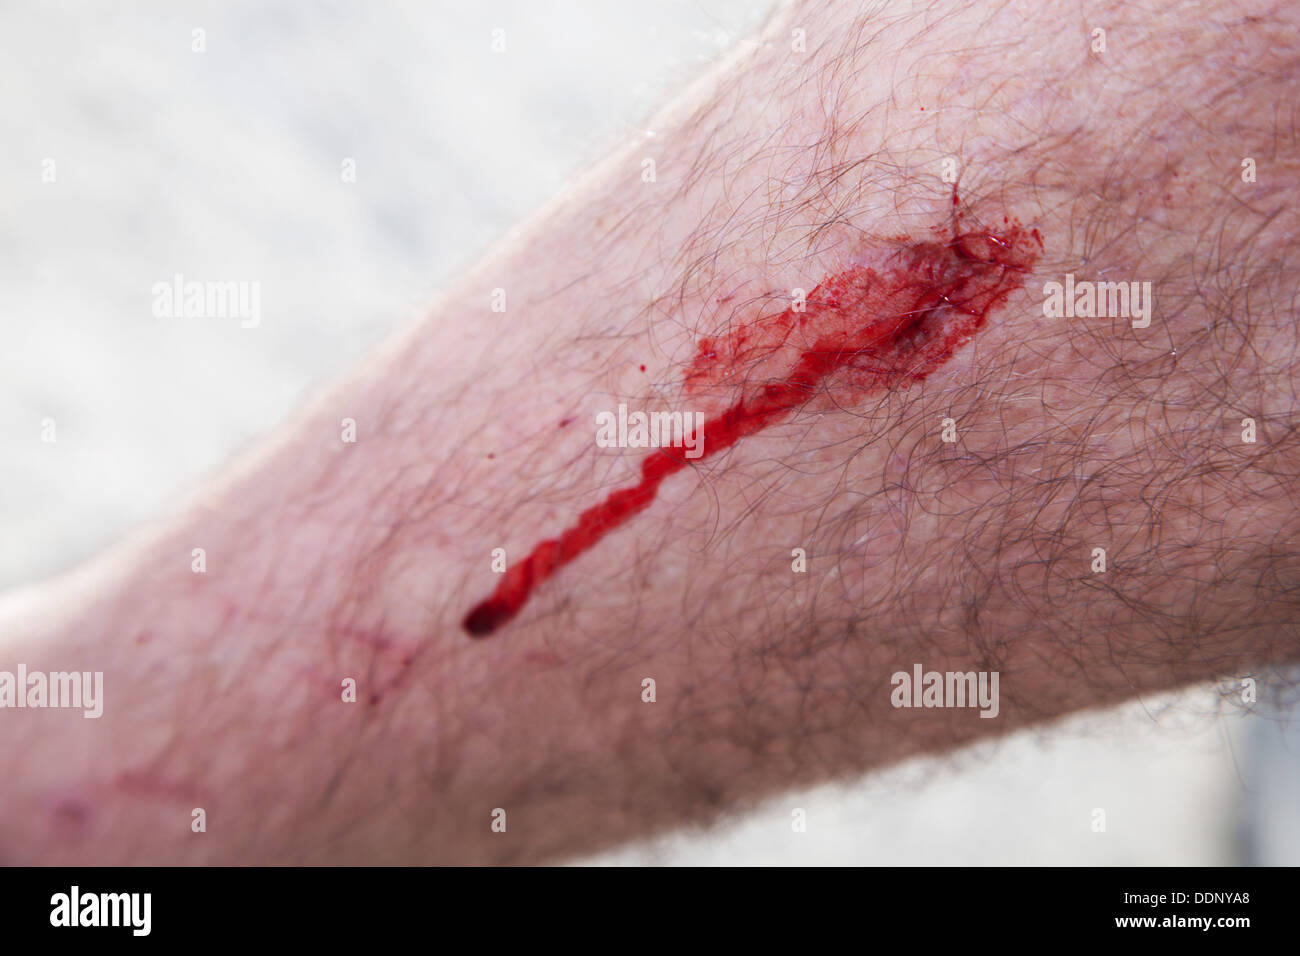 A man's leg with blood coming from a cut / wound - Stock Image